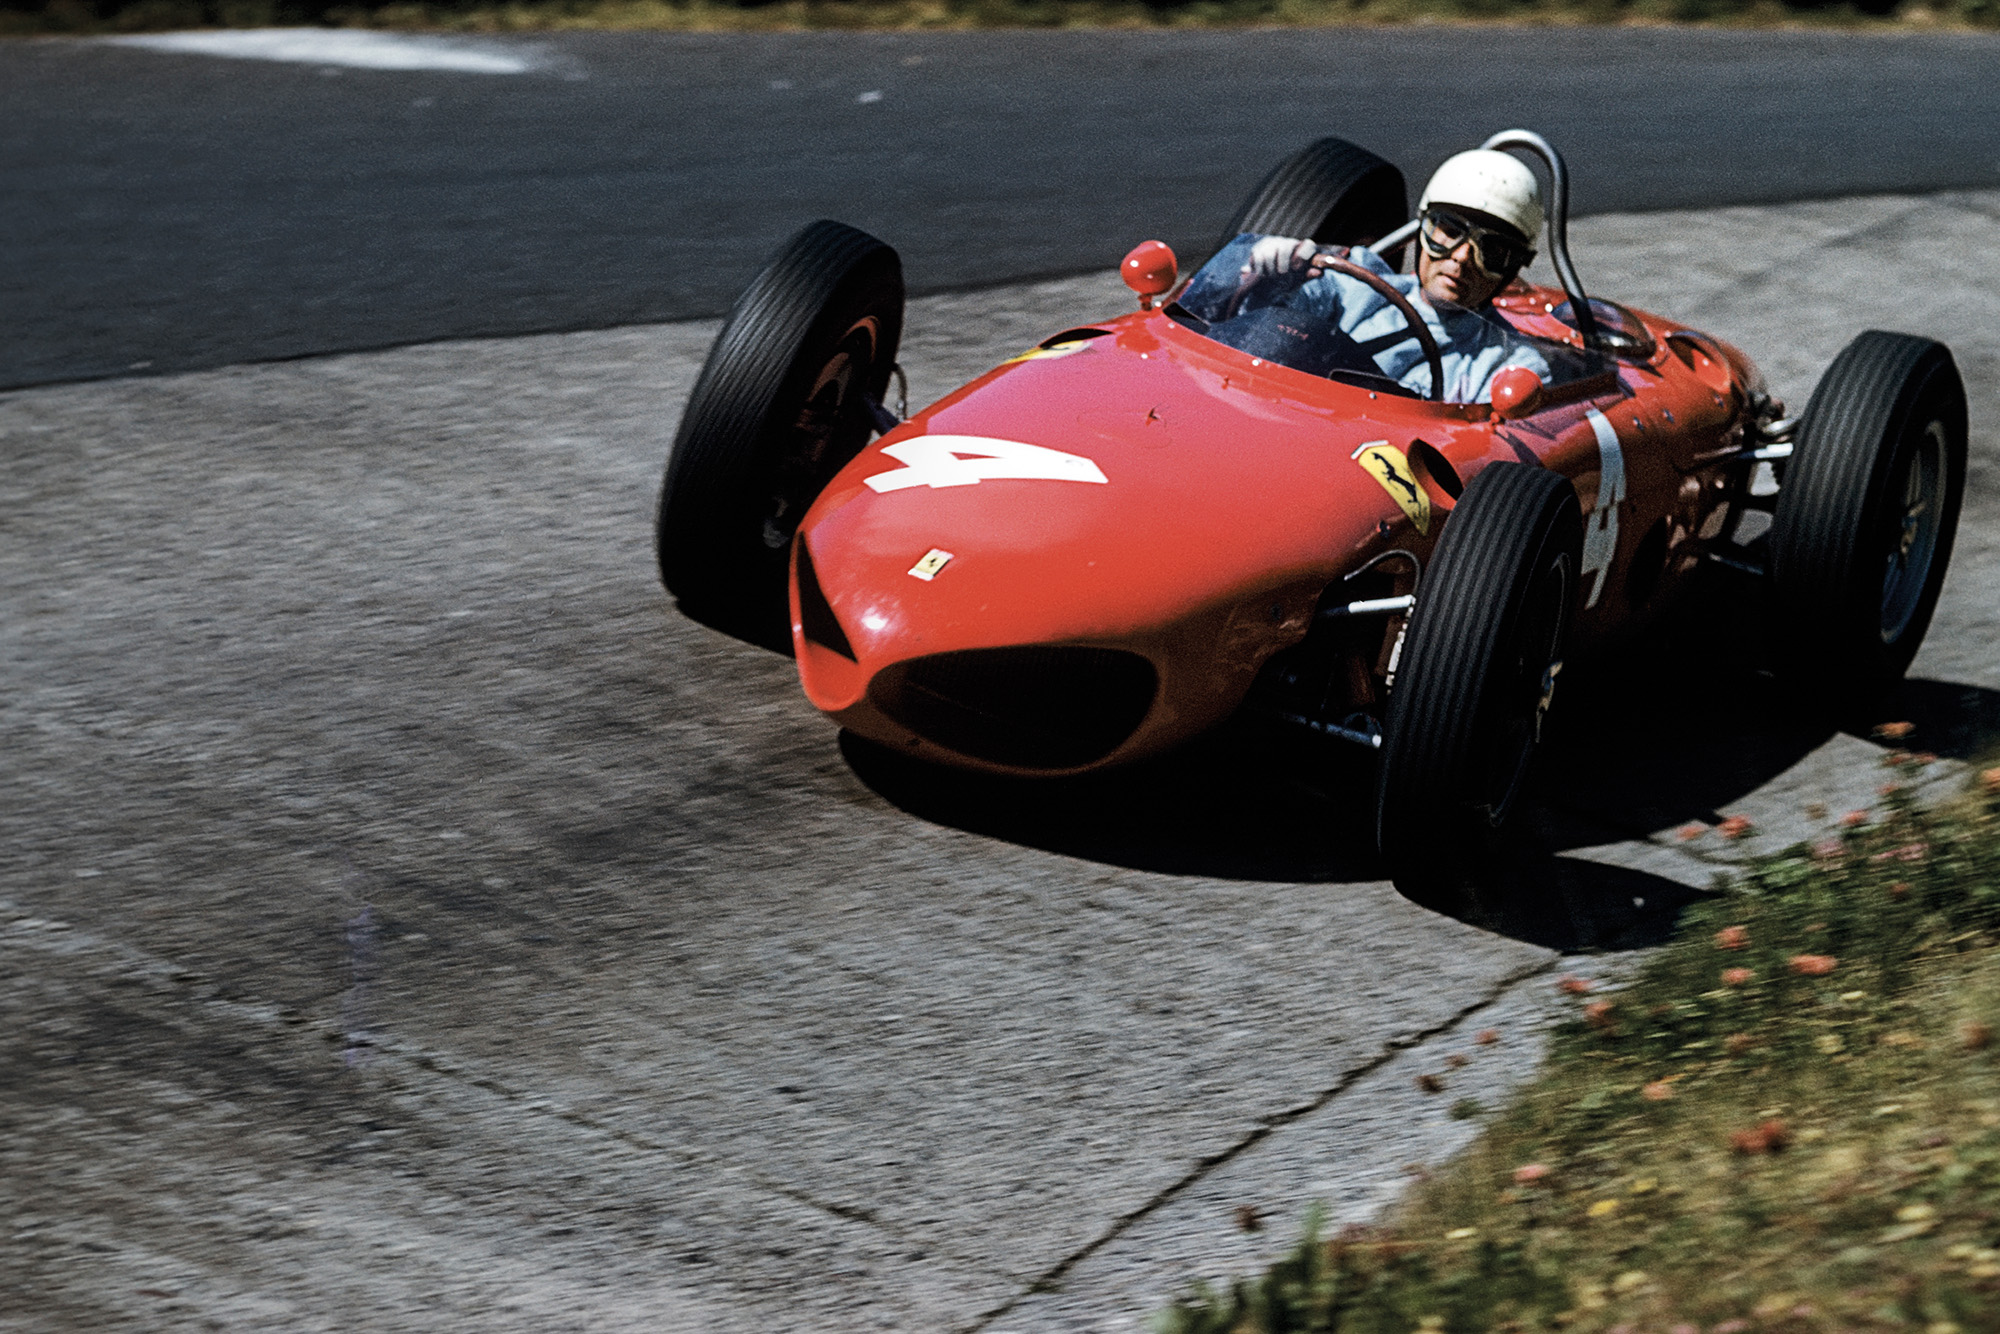 Phil Hill in the Ferrari 156 at the Karussell on the Nurburgring in 1961